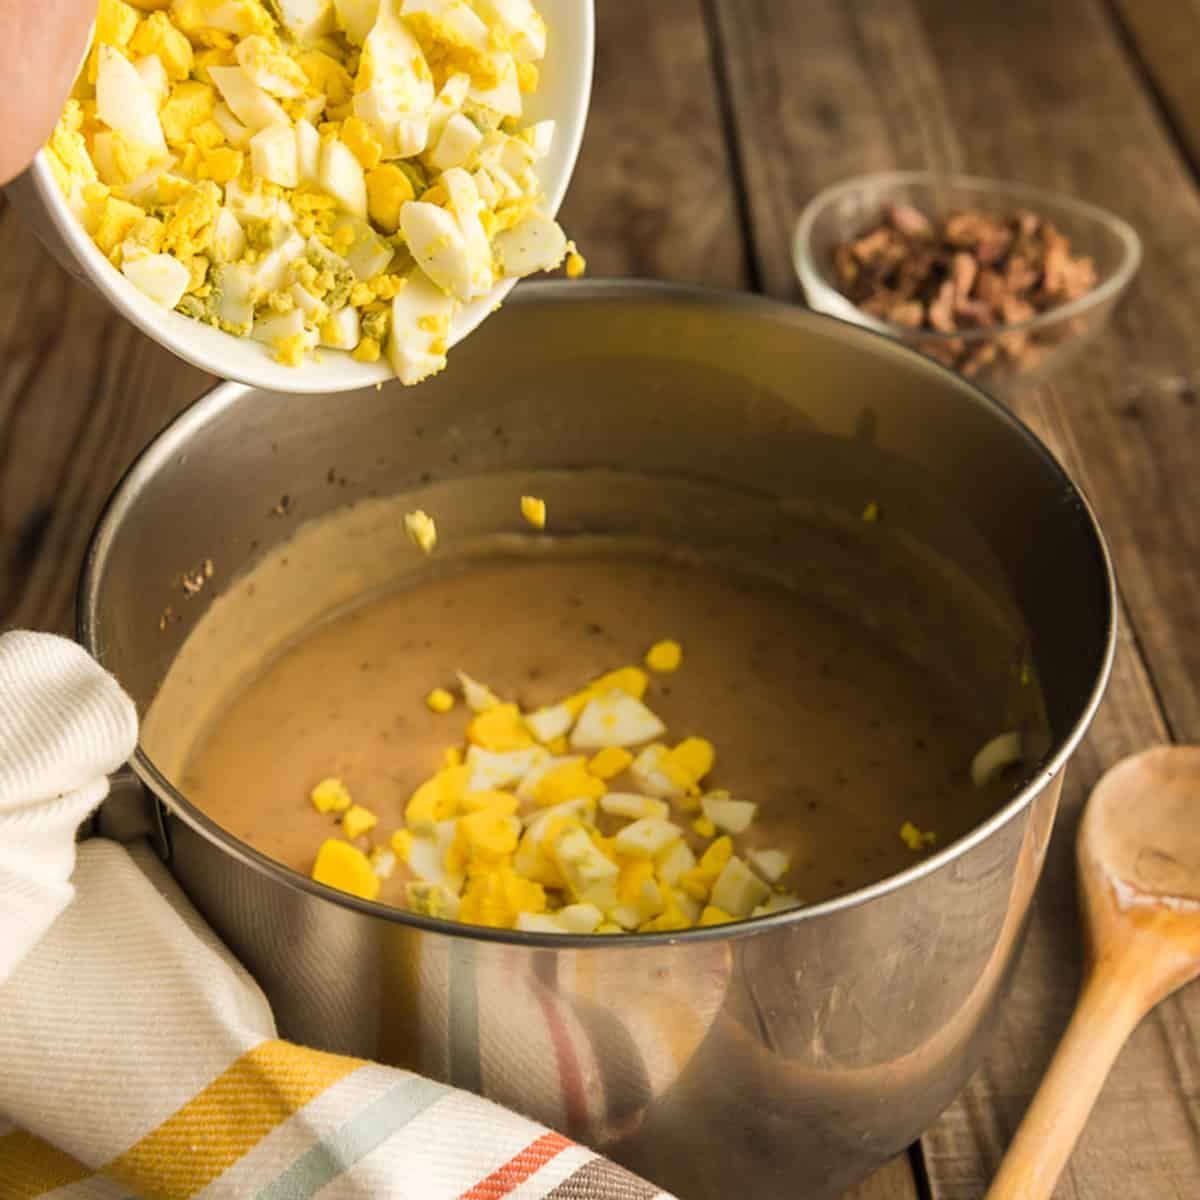 Adding chopped hard boiled eggs to a pot of gravy.